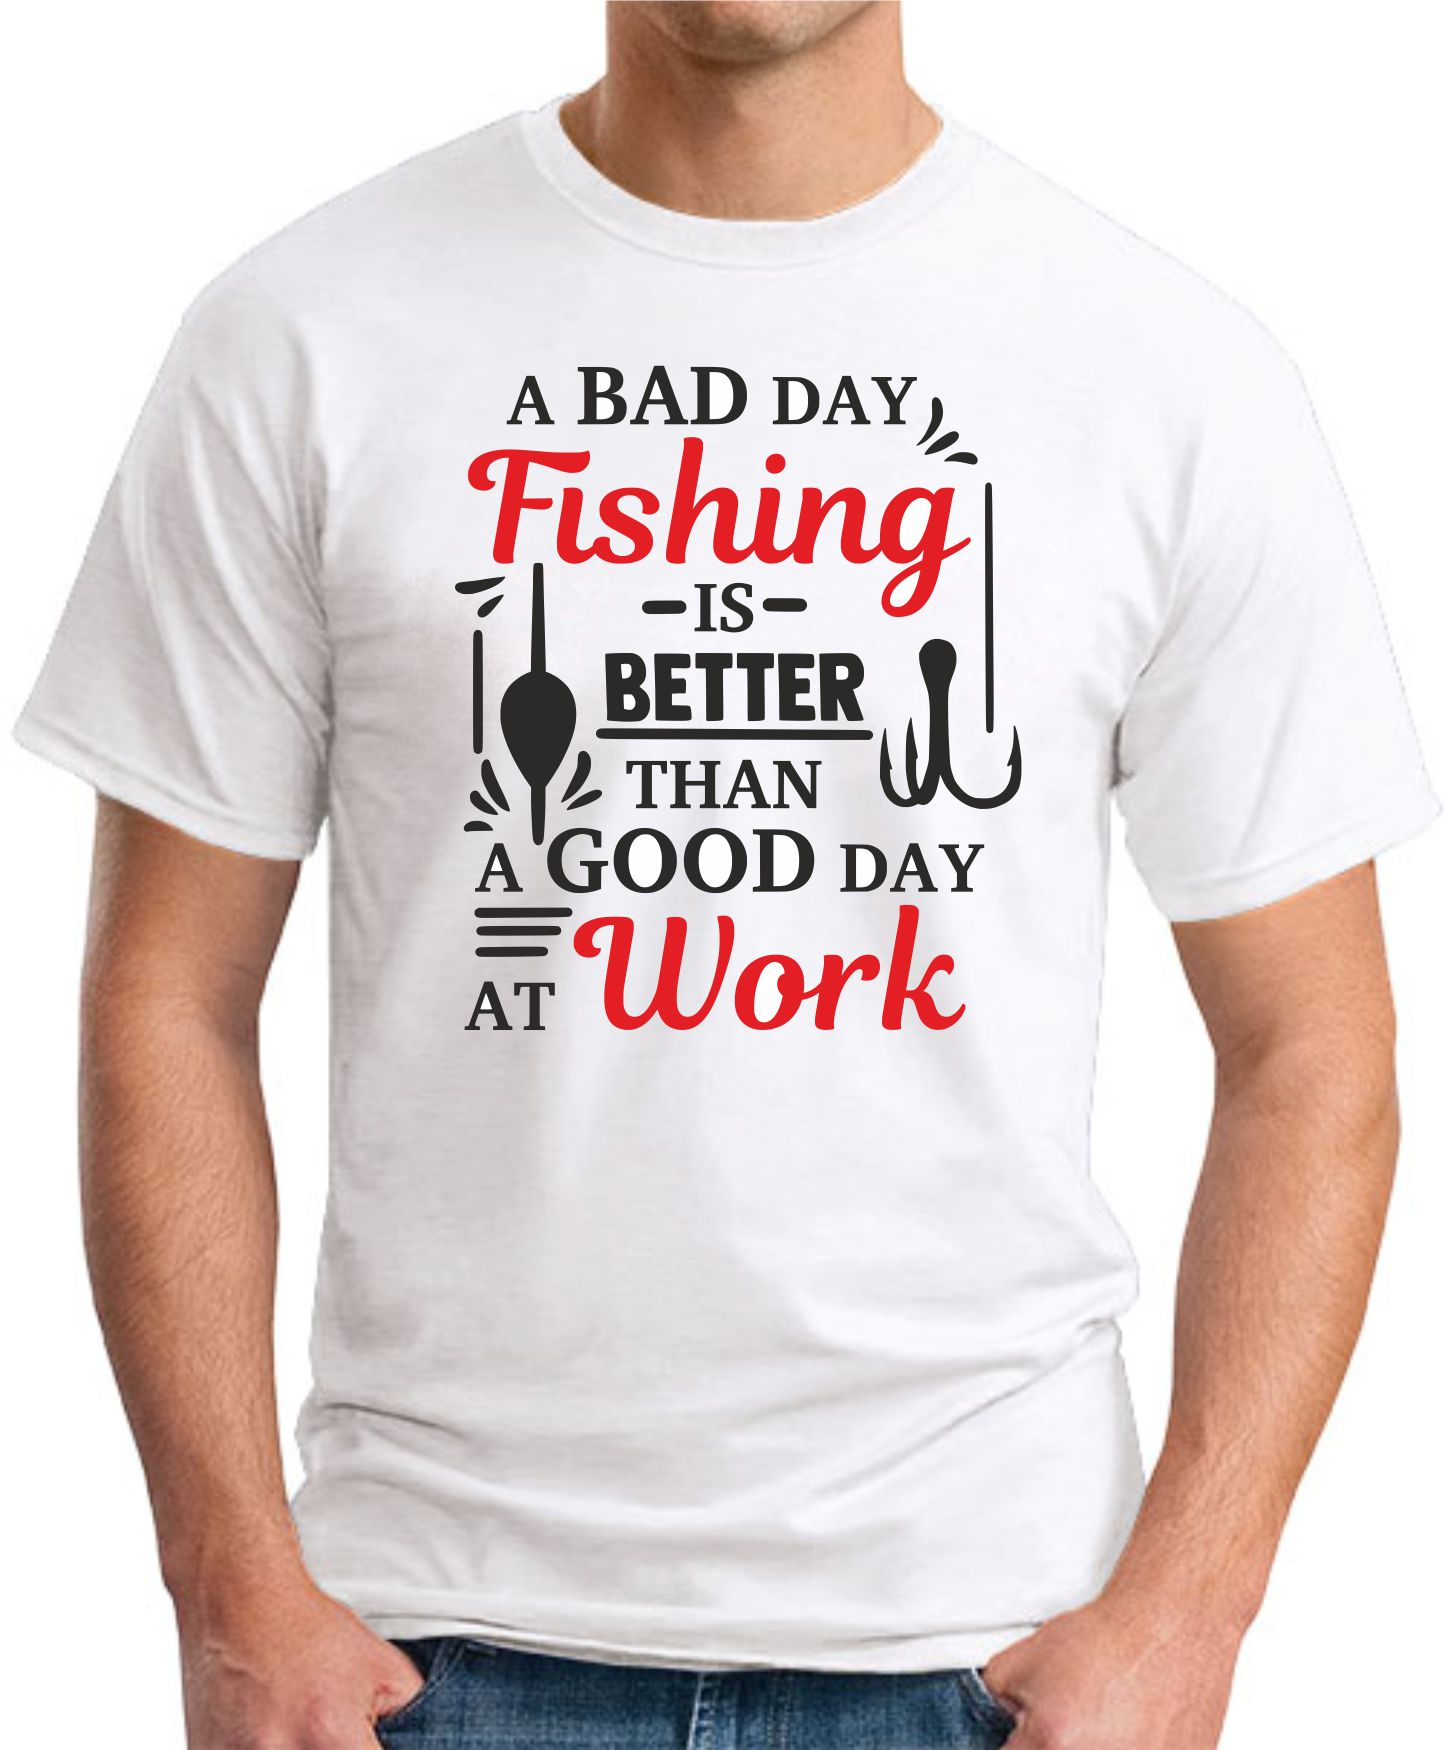 A BAD DAY FISHING IS BETTER THAN A GOOD DAY AT WORK WHITE